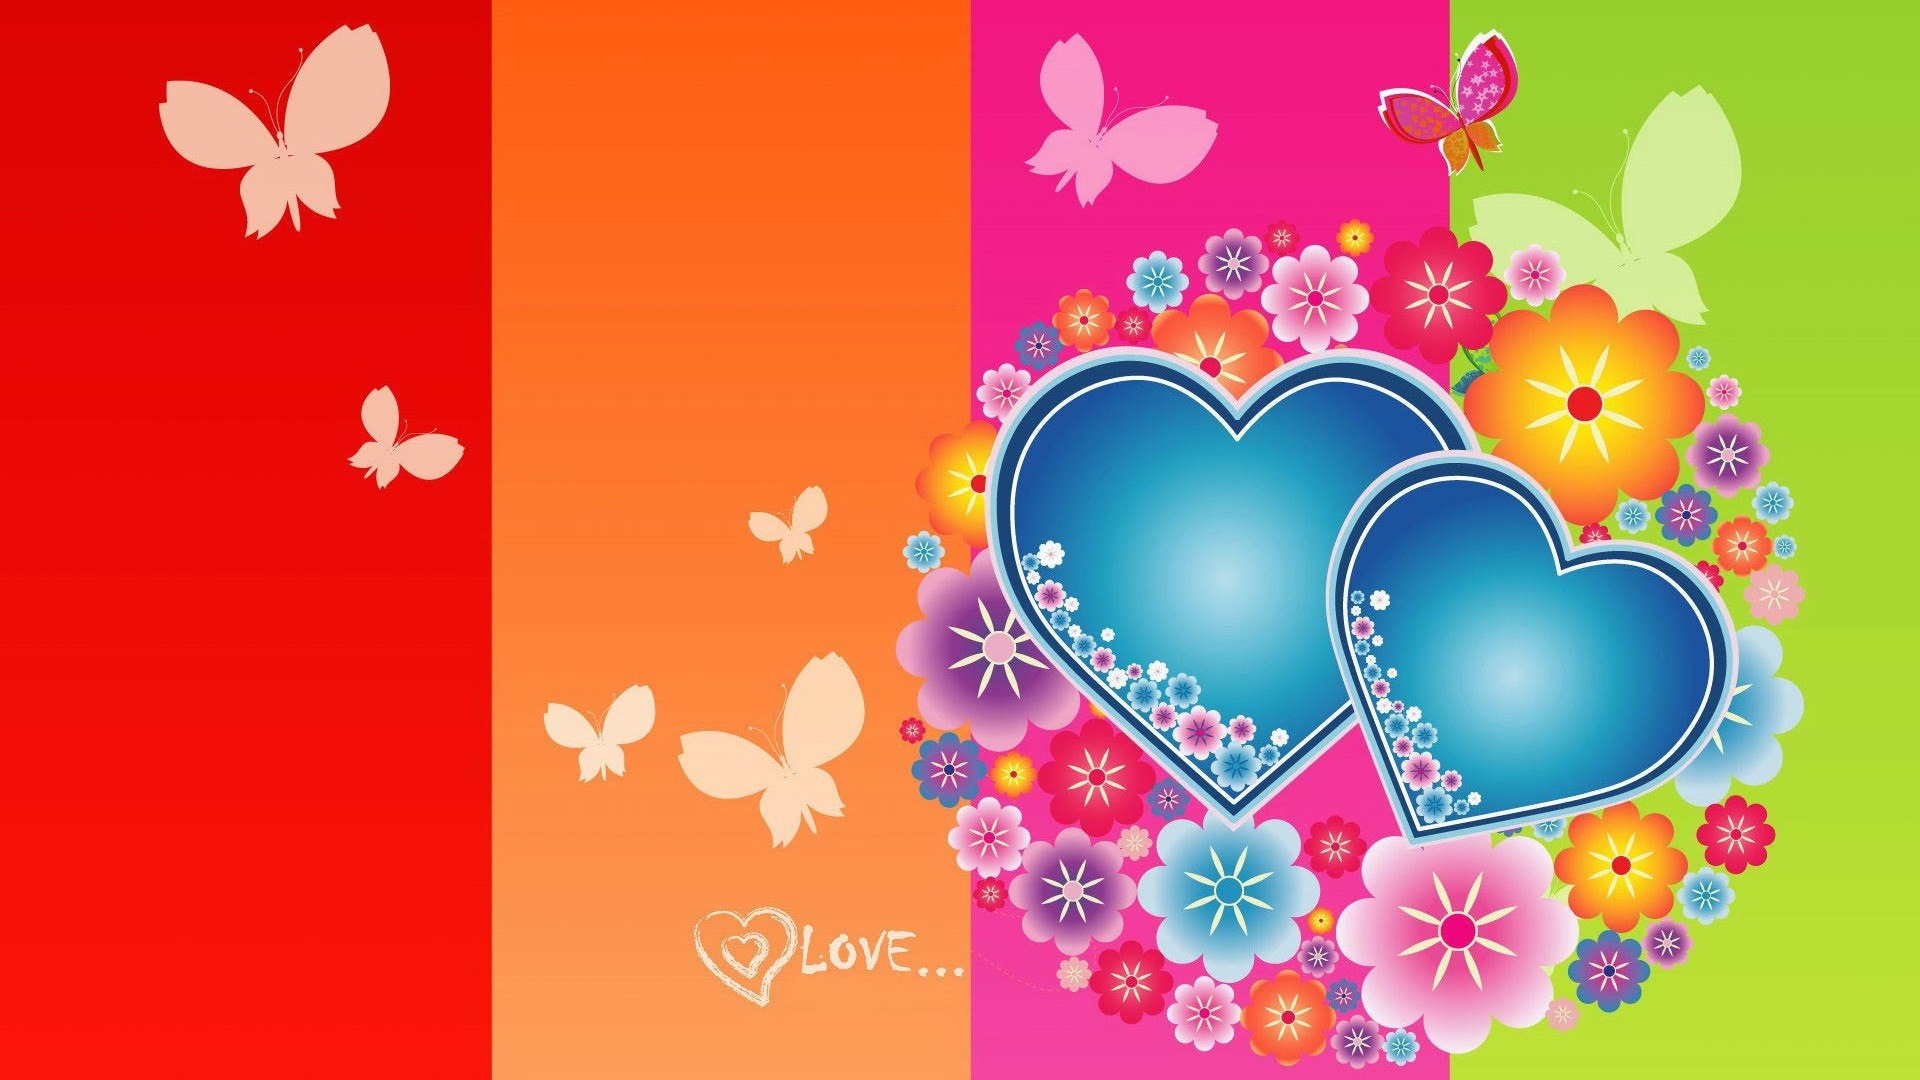 cute valentines day 1920x1080 hd desktop wallpaper 1920x1080